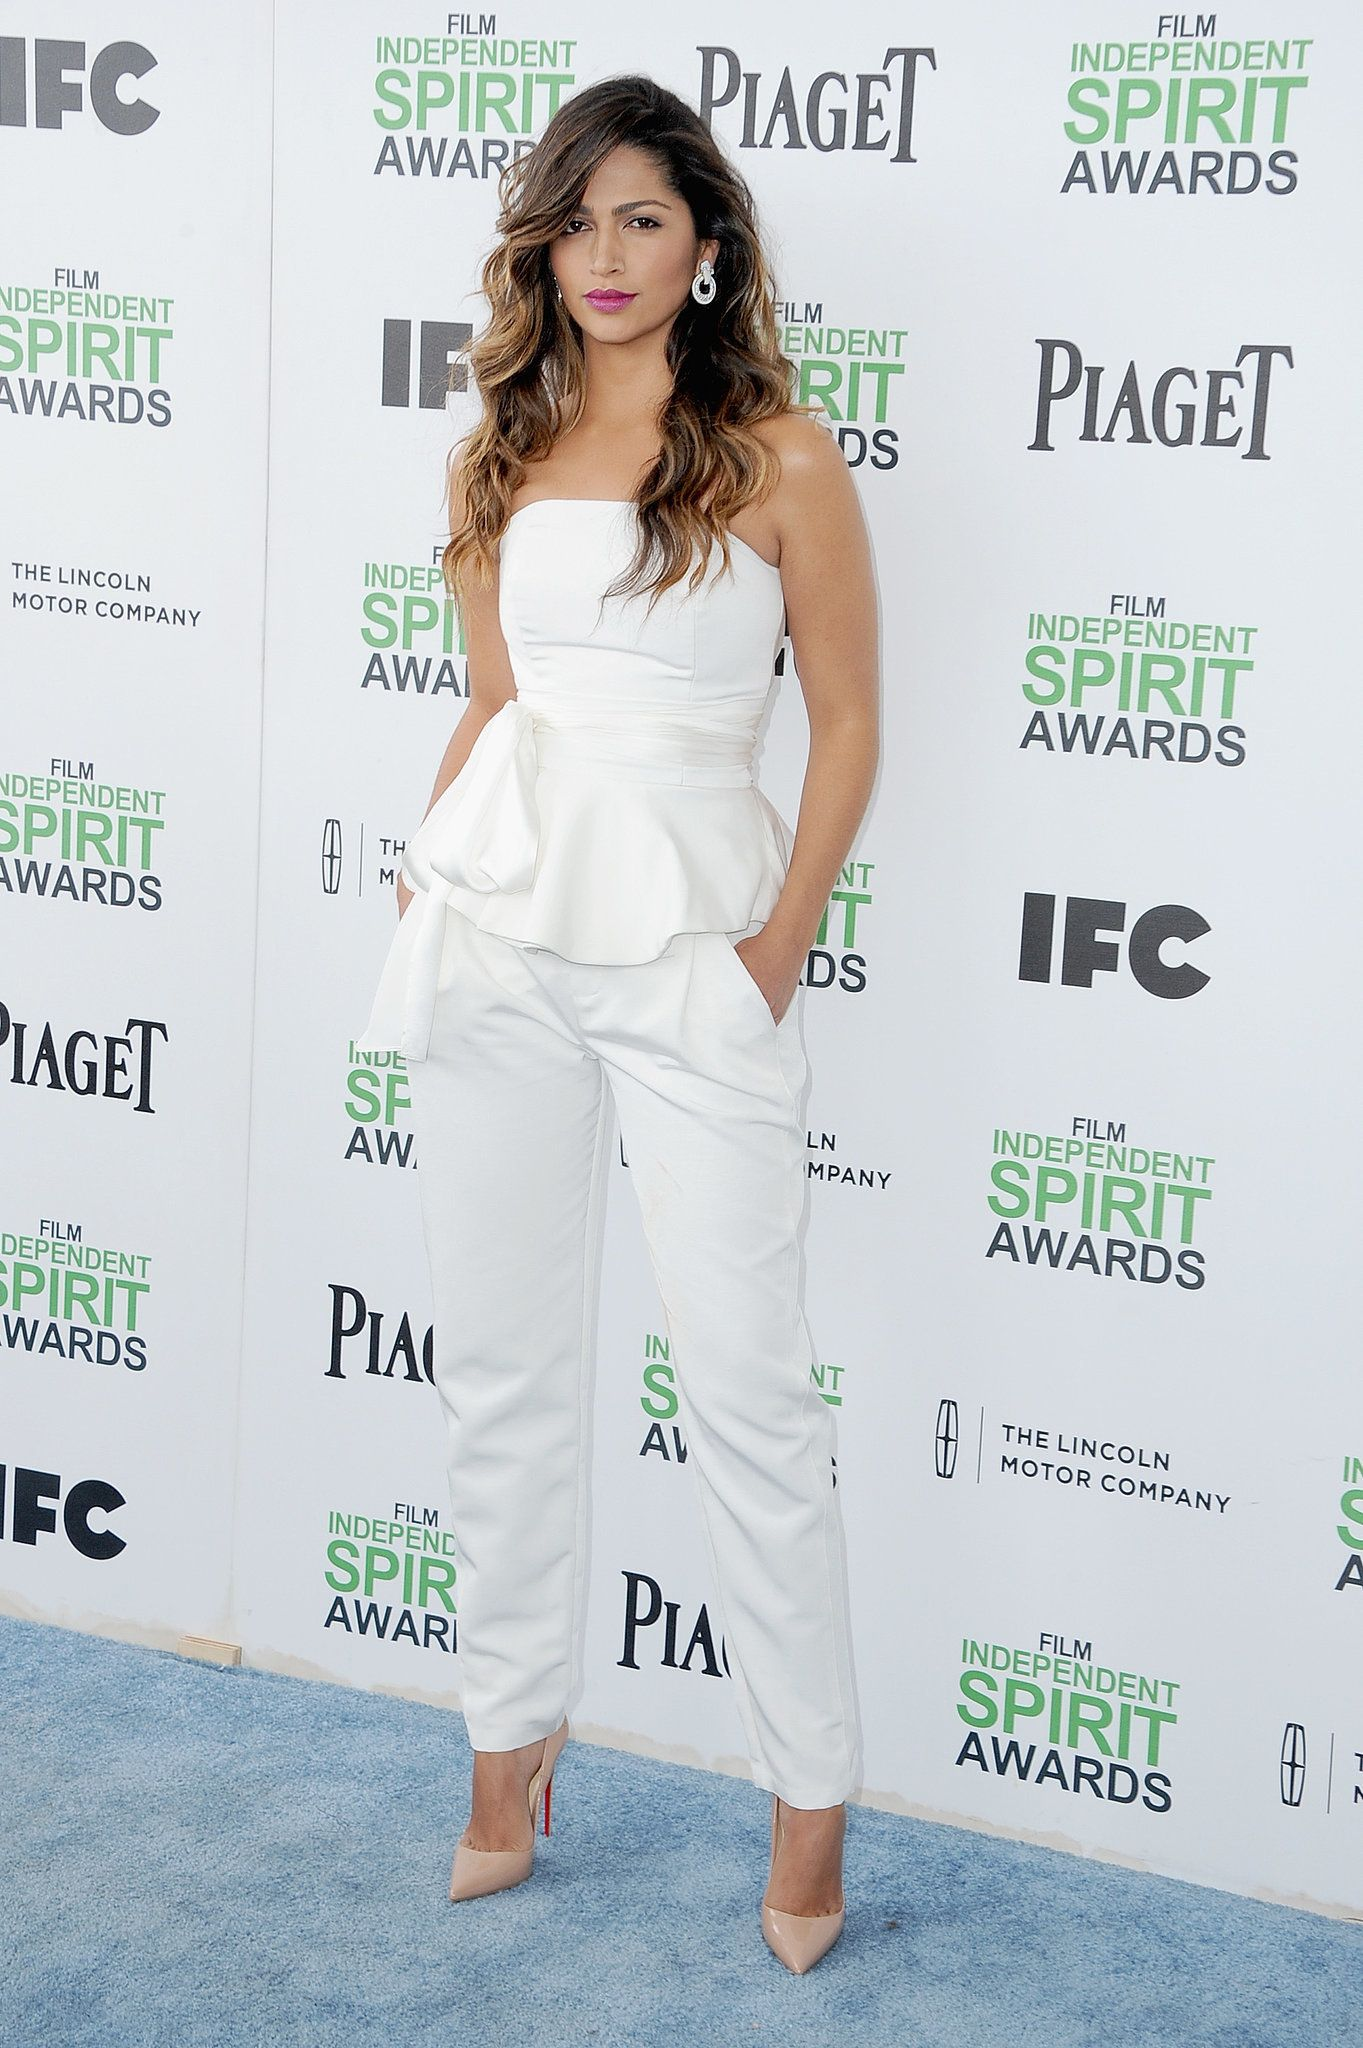 To acquire Get the look celeb camila alves picture trends